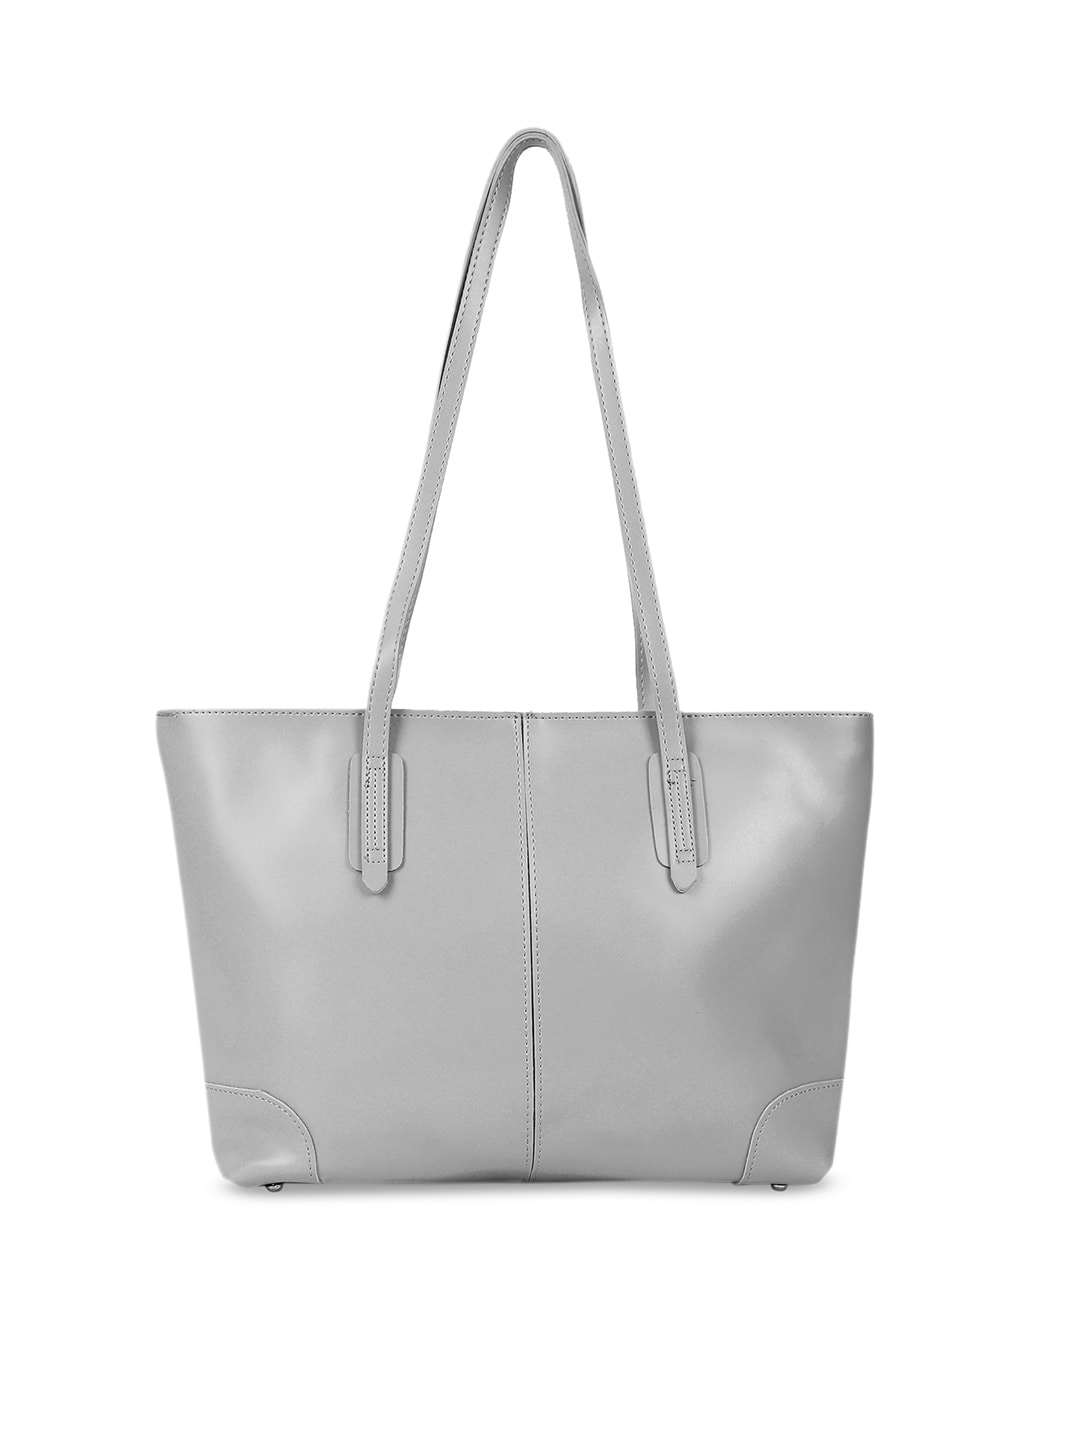 1f014b1f4e Tote Bag - Buy Latest Tote Bags For Women   Girls Online